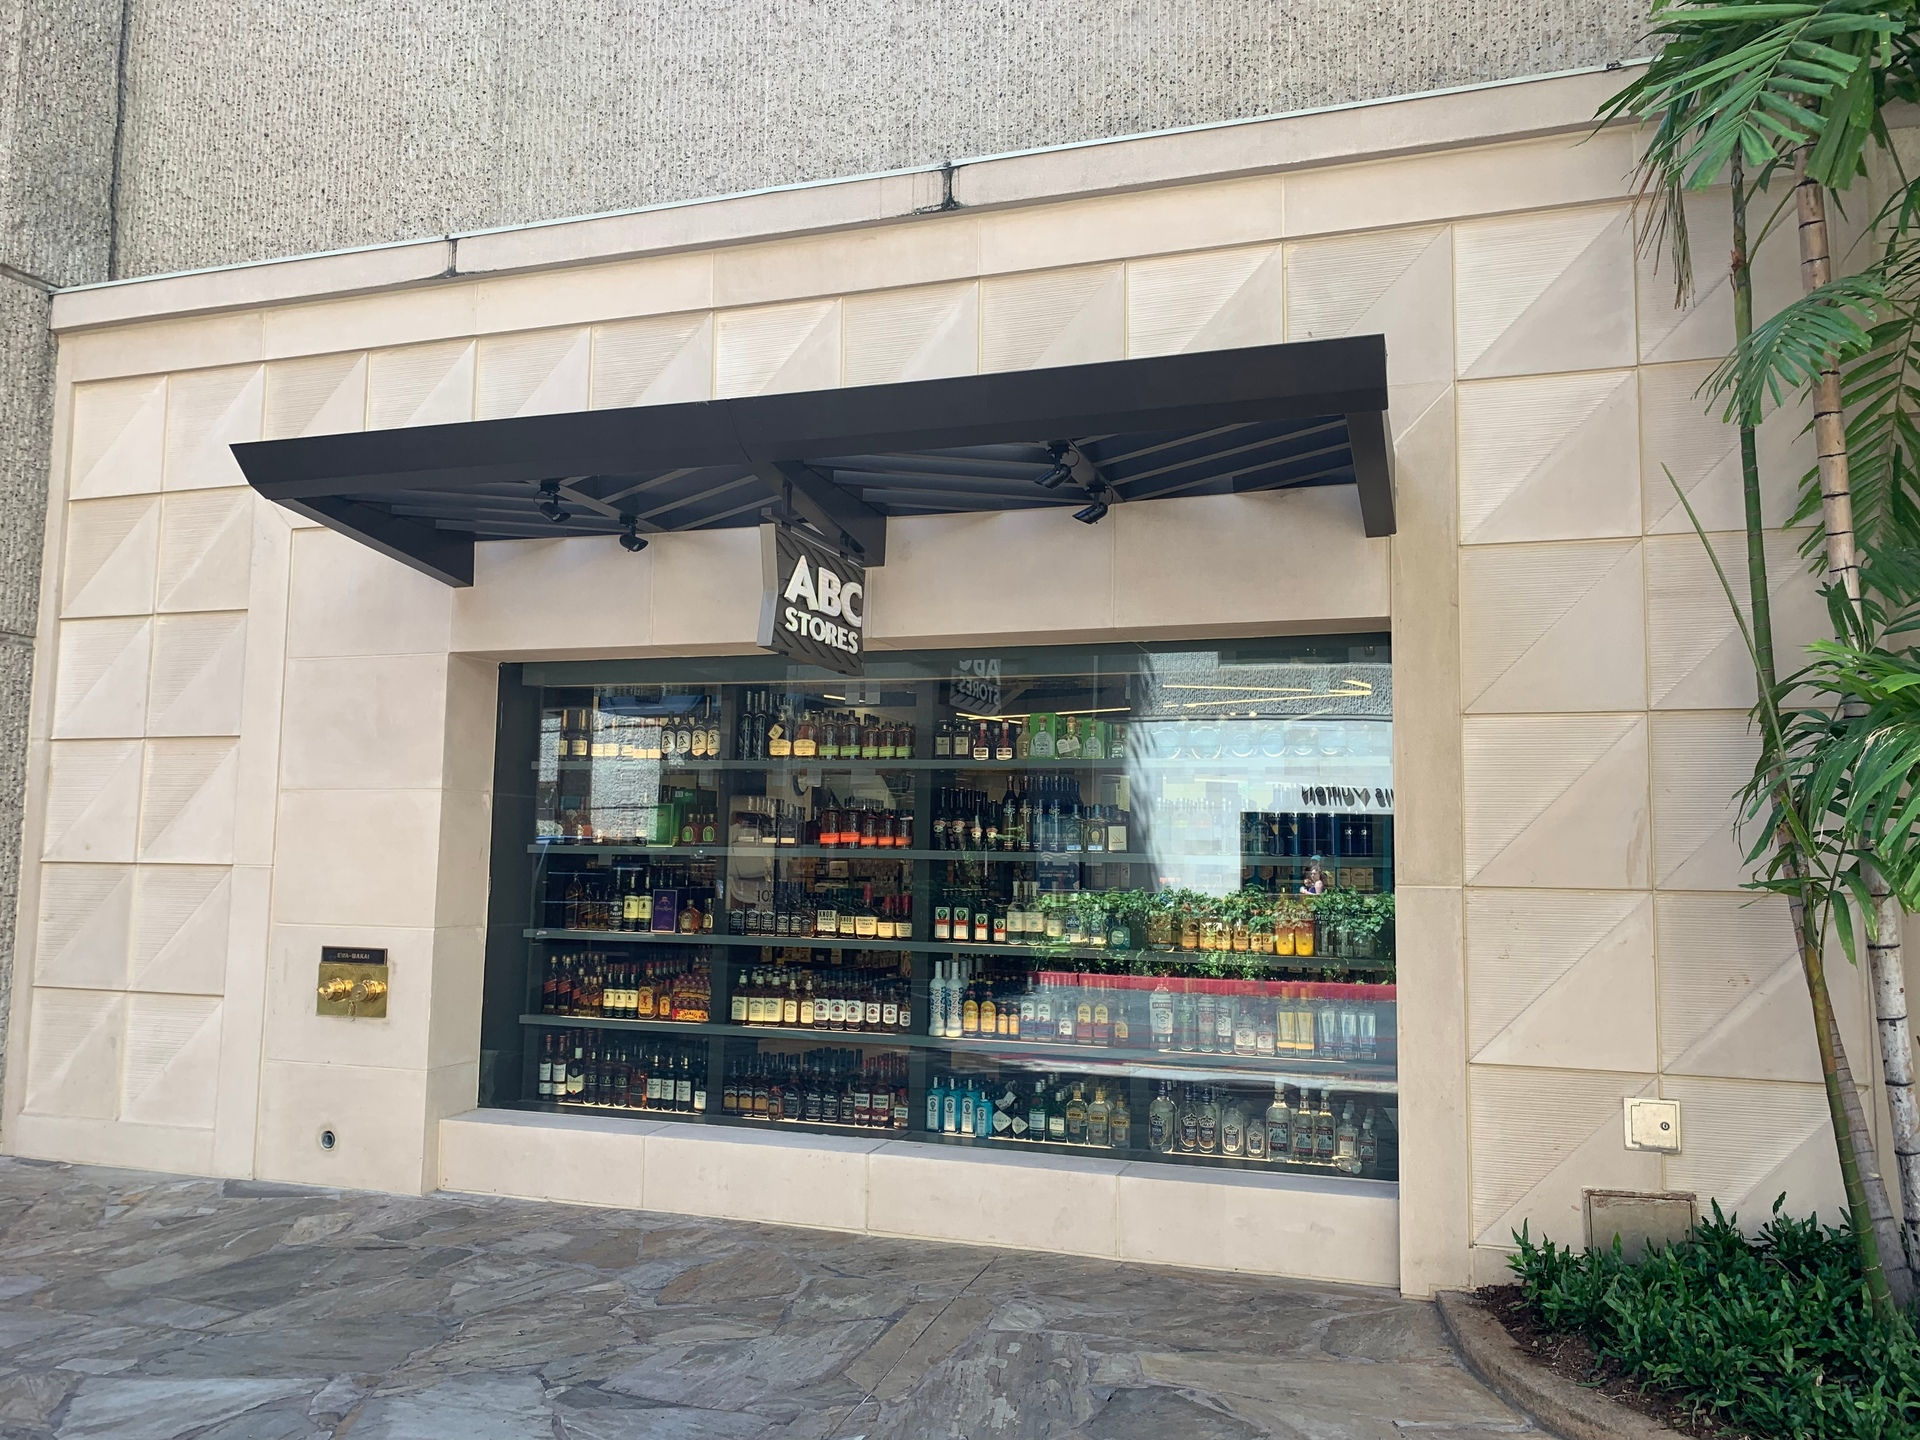 GC Products replaced existing architectural tiles with the new GFRC façade for the ABC Store at the Royal Hawaiian in Waikiki, Hawaii.